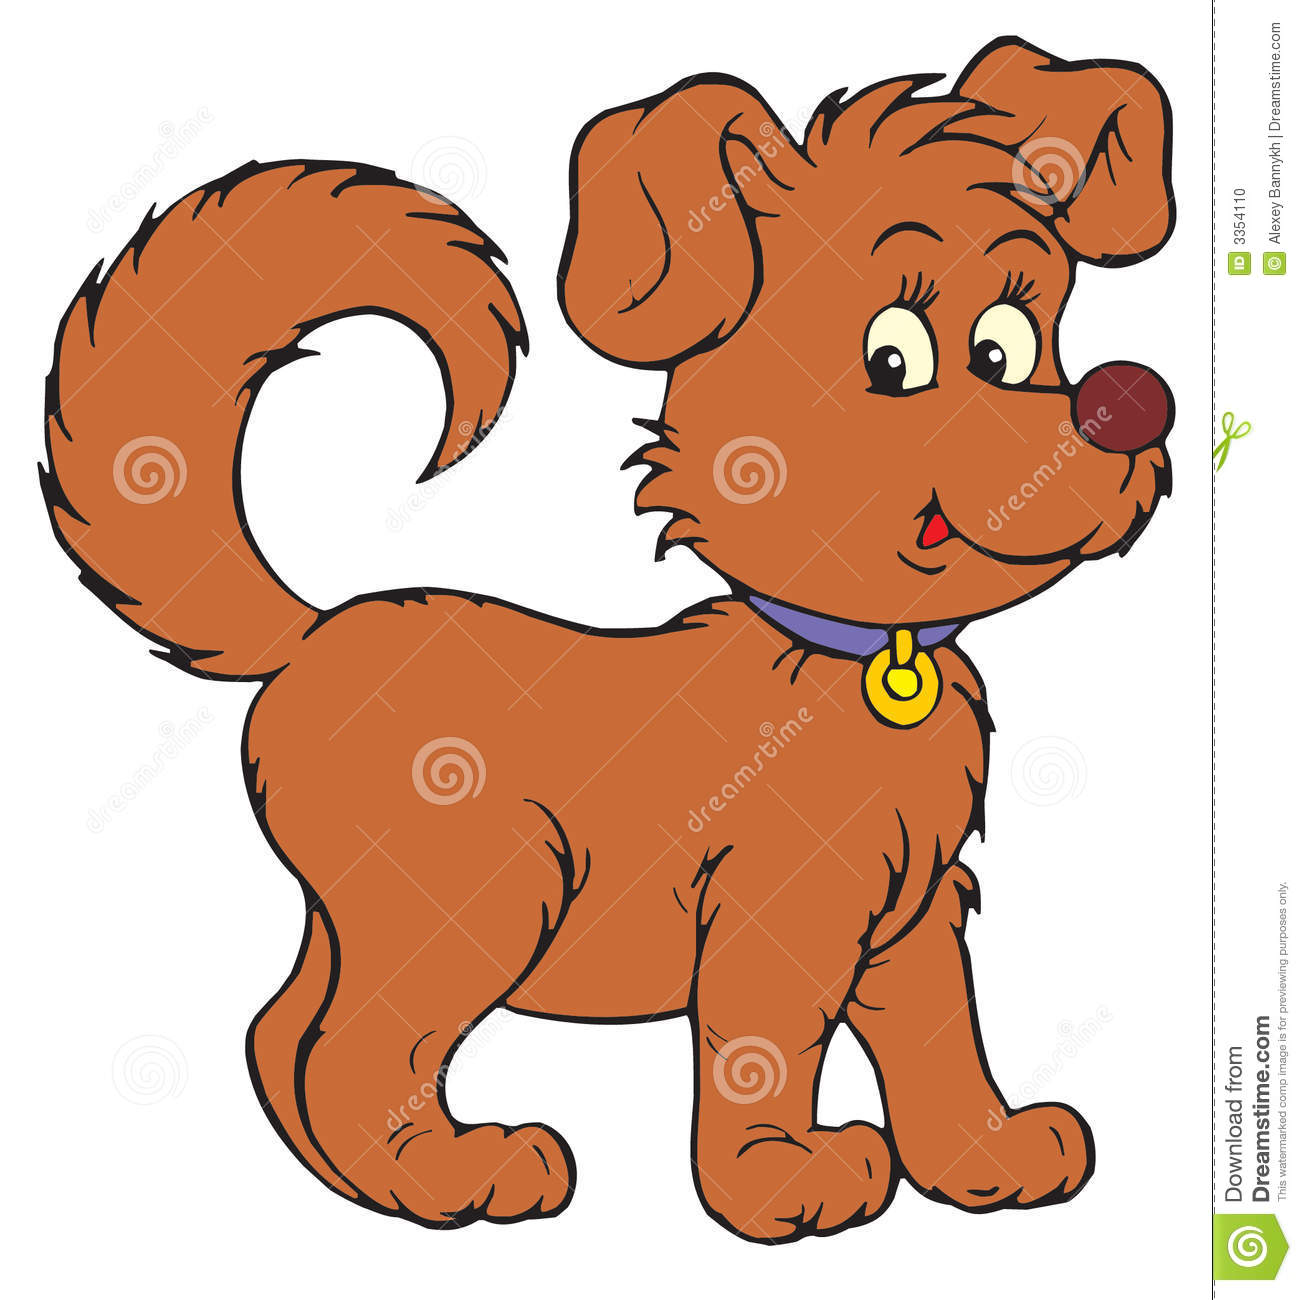 Dogs Clipart-Dogs clipart-11